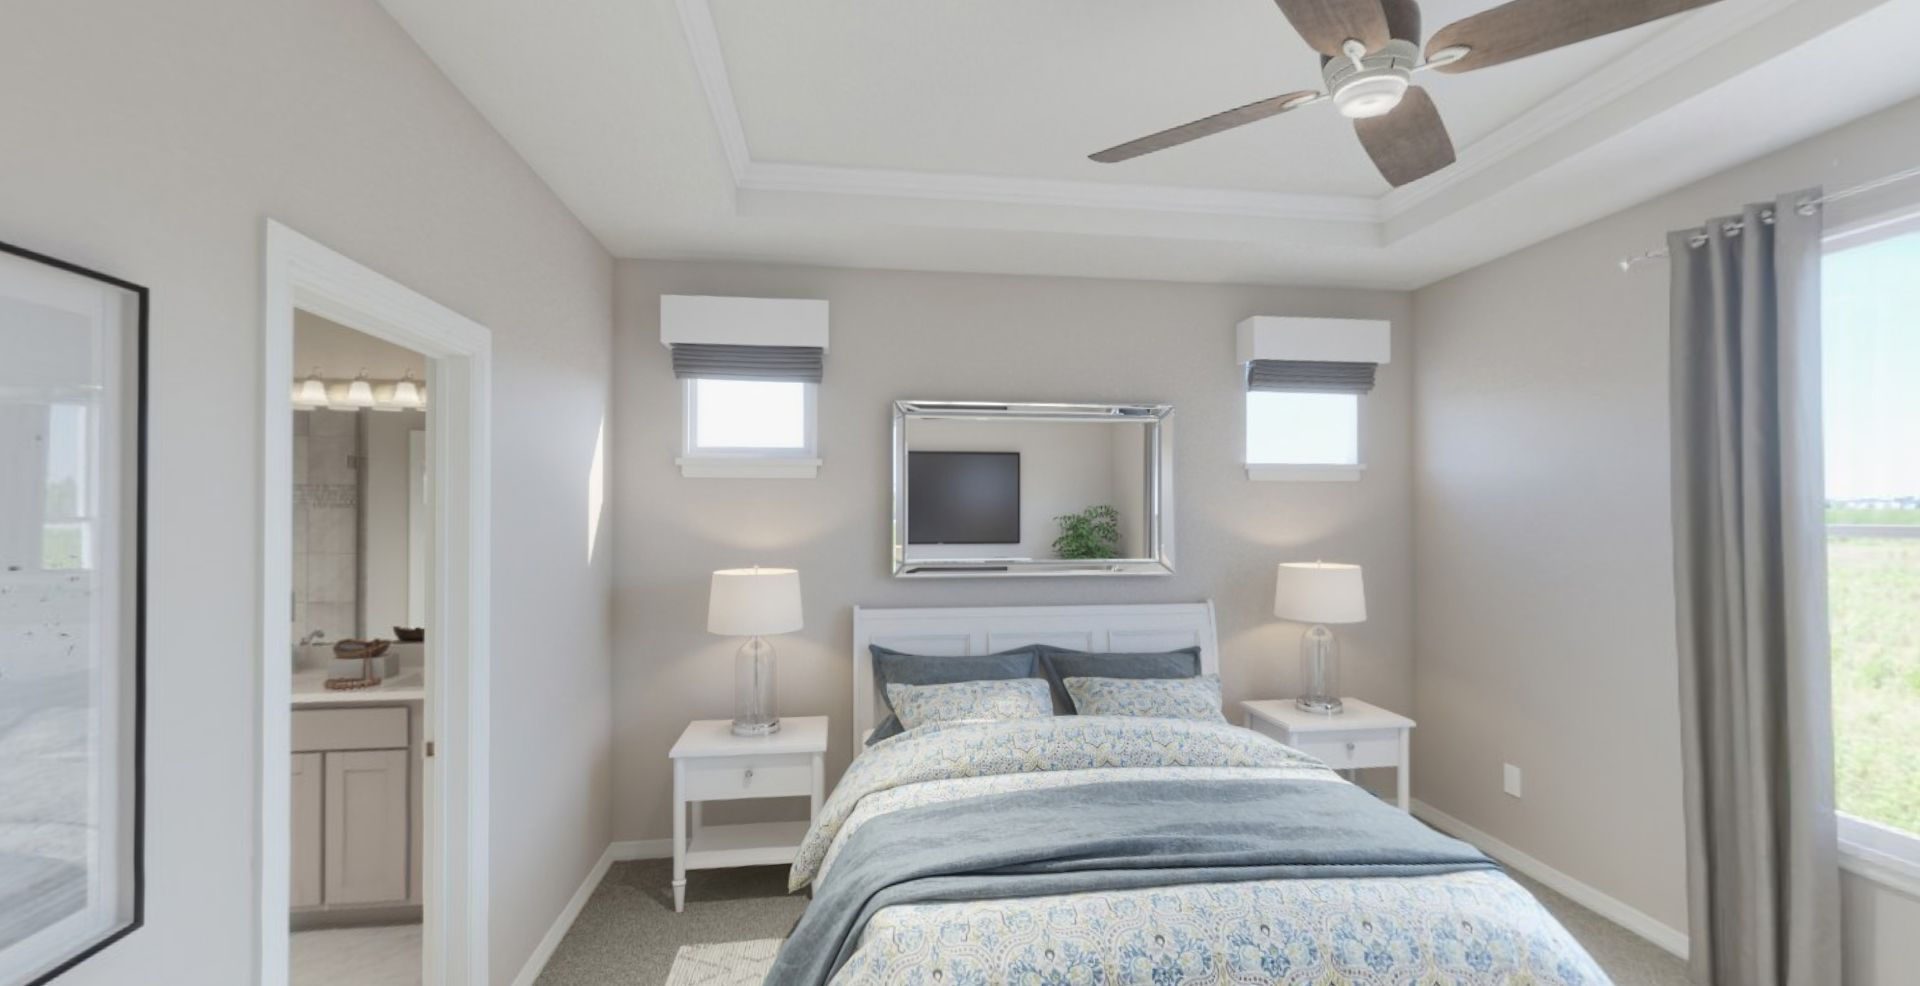 Bedroom featured in the Adagio By Olthof Homes in Indianapolis, IN